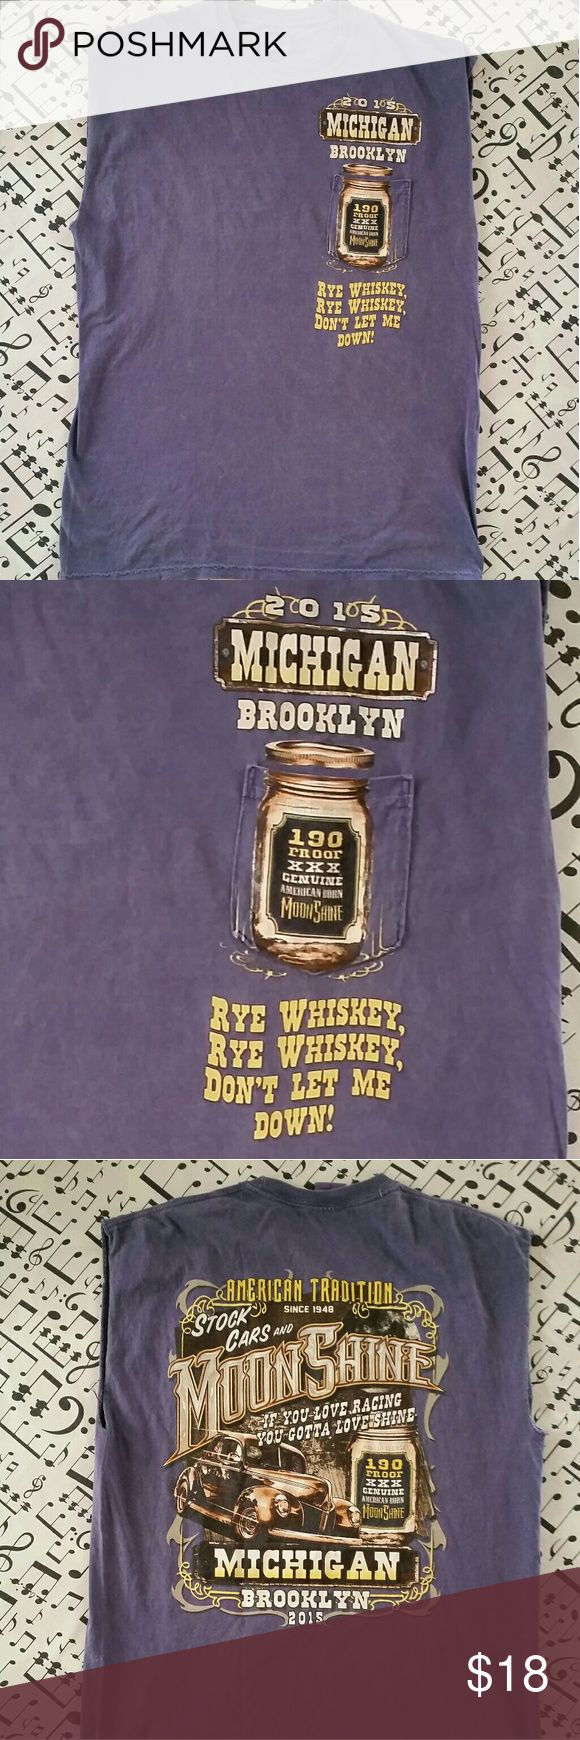 """Brooklyn Michigan Stock Cars and Moonshine Cool Mens Tank Top featuring Brooklyn Michigan Stock Cars & Moonshine 2015 Good Condition Size L Measures 23"""" pit to pit and 31"""" from shoulder to bottom  #rockandrollclothing #rockclothing #brooklynmichigantshirt Shirts Tank Tops"""